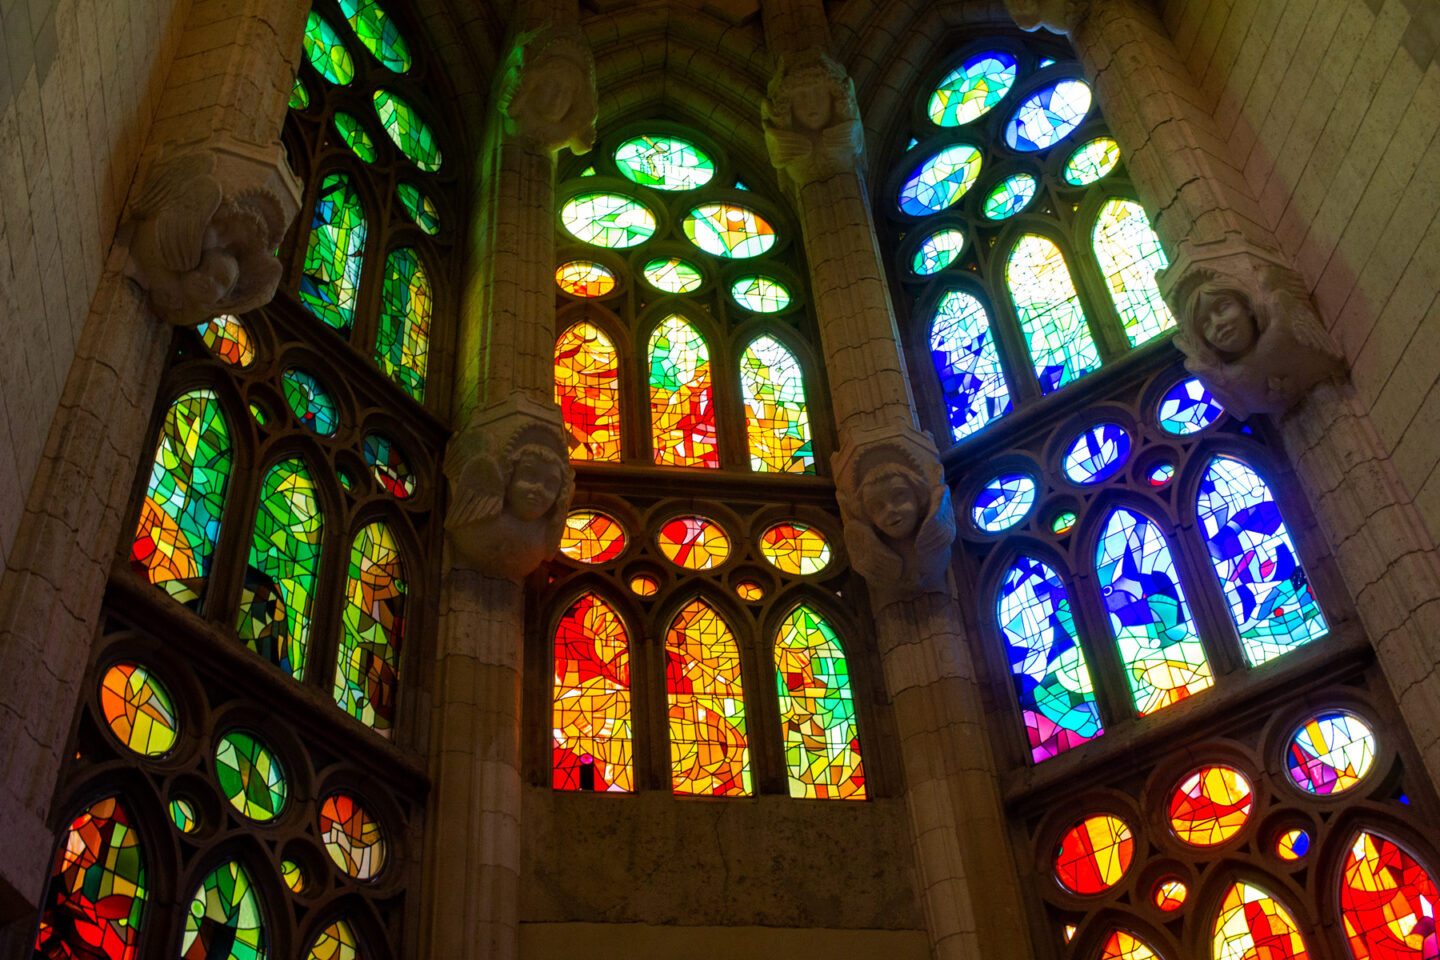 Stained glass windows showing greens, reds and blues.